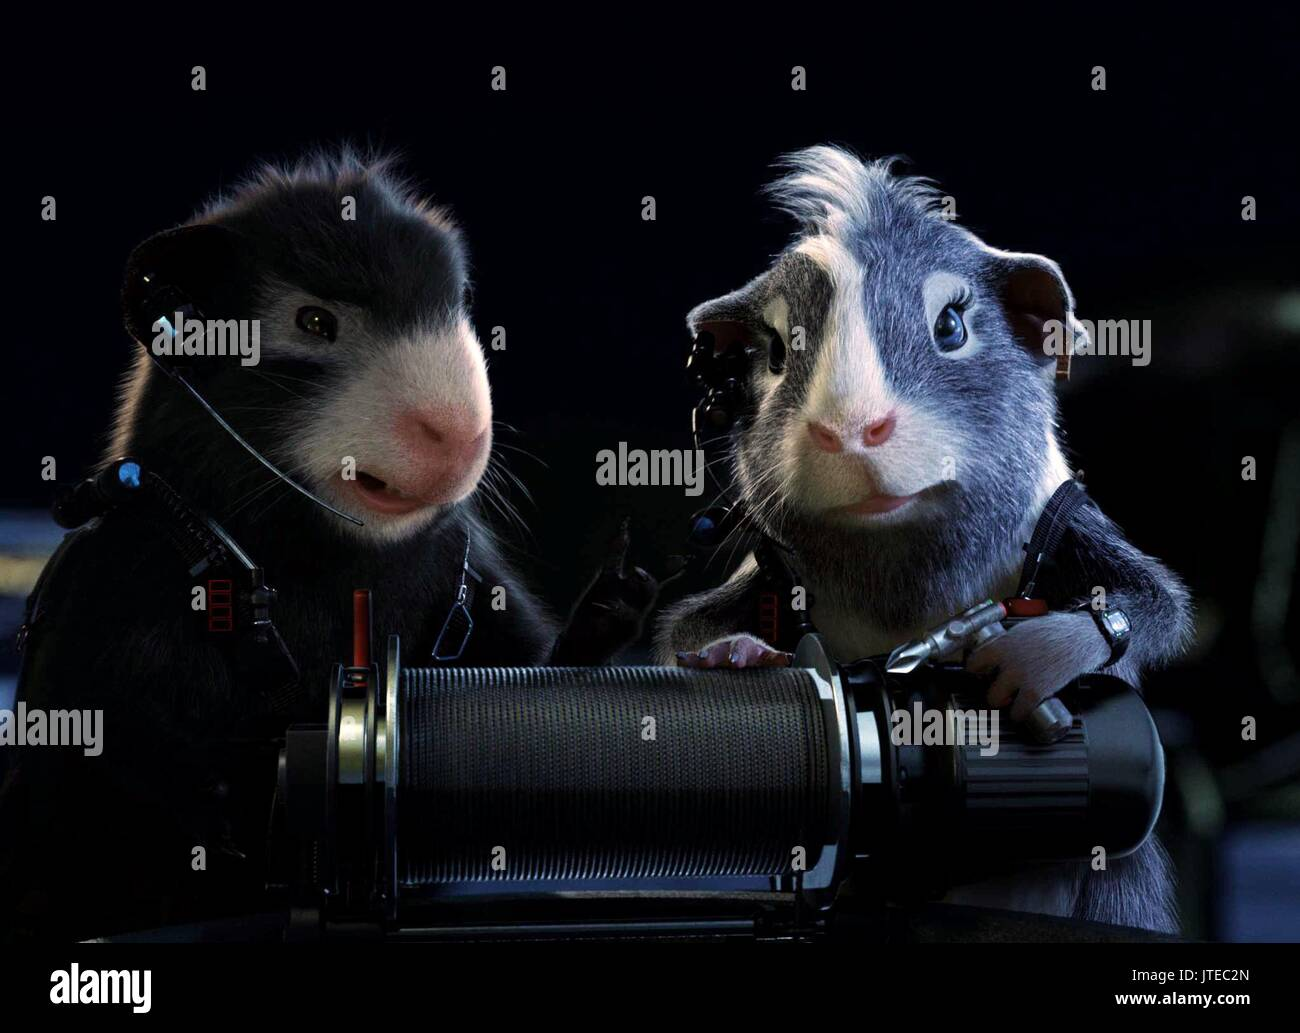 Agent Blaster Agent Juarez G Force 2009 Stock Photo Alamy